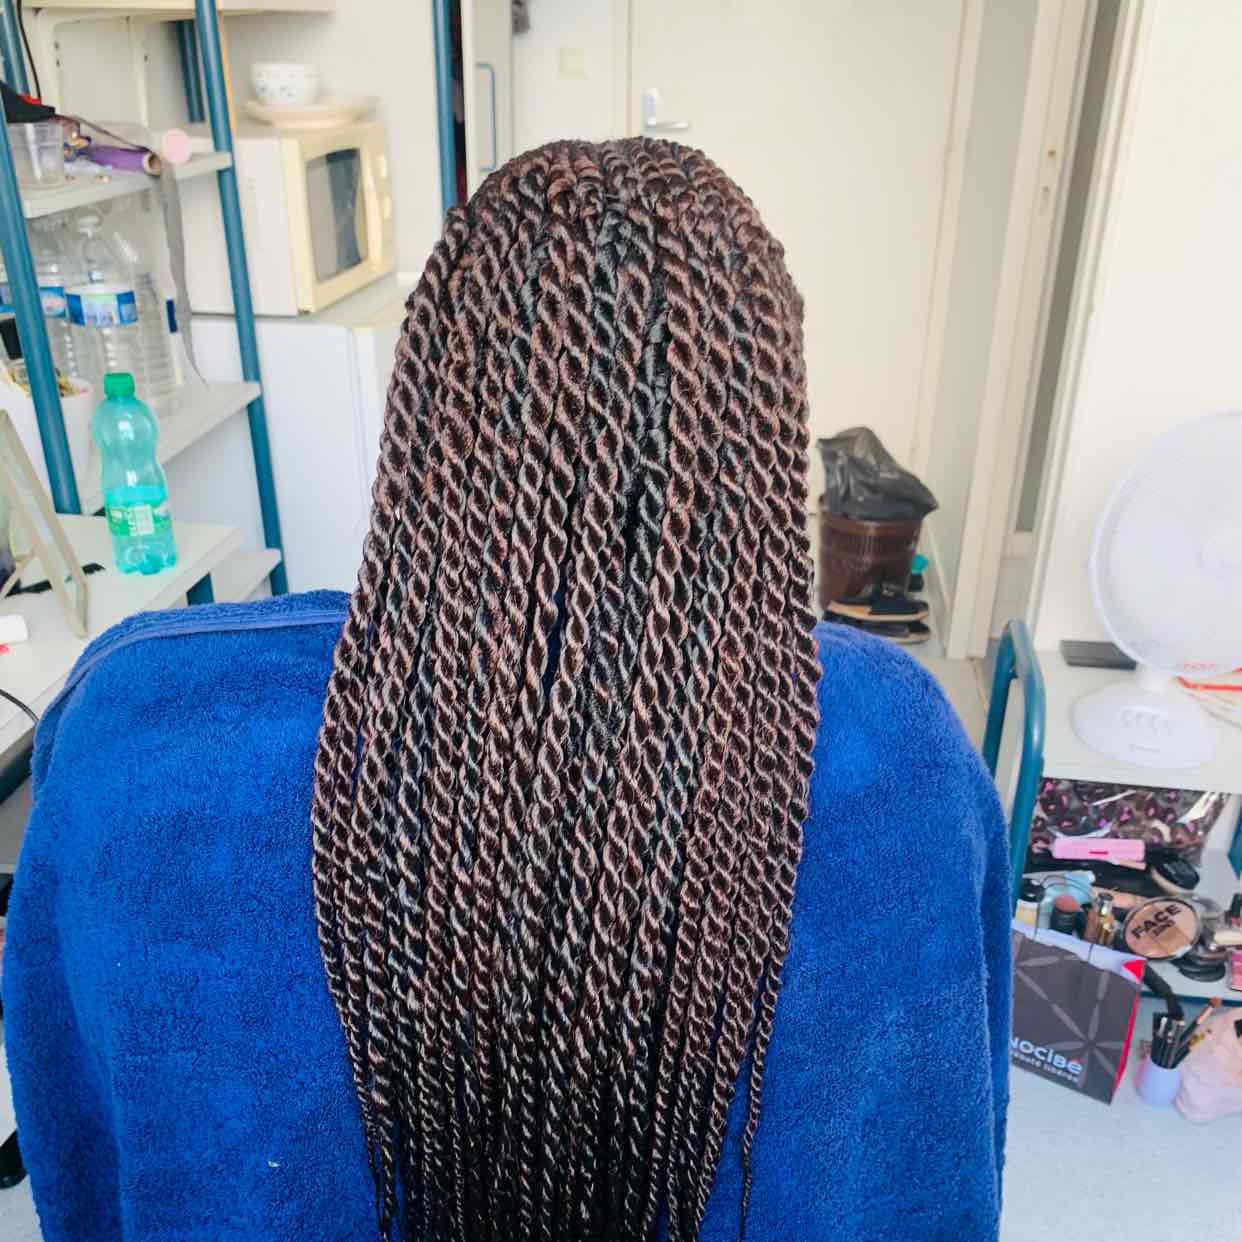 salon de coiffure afro tresse tresses box braids crochet braids vanilles tissages paris 75 77 78 91 92 93 94 95 OQWWHLZV